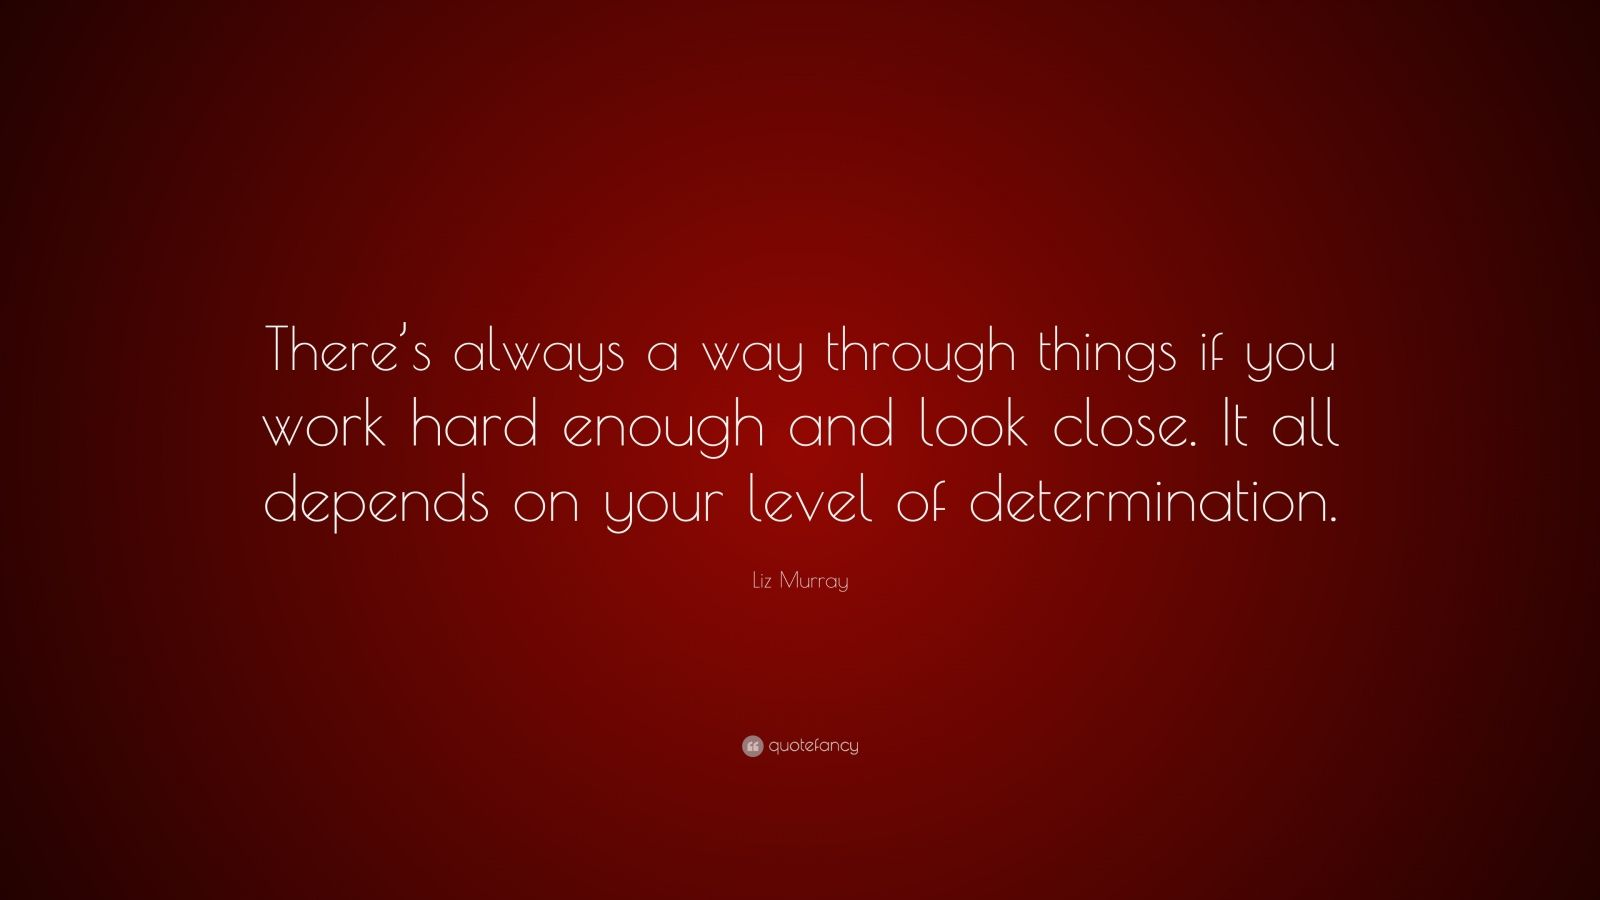 """Liz Murray Quote: """"There's always a way through things if you work hard enough and look close. It all depends on your level of determination."""""""